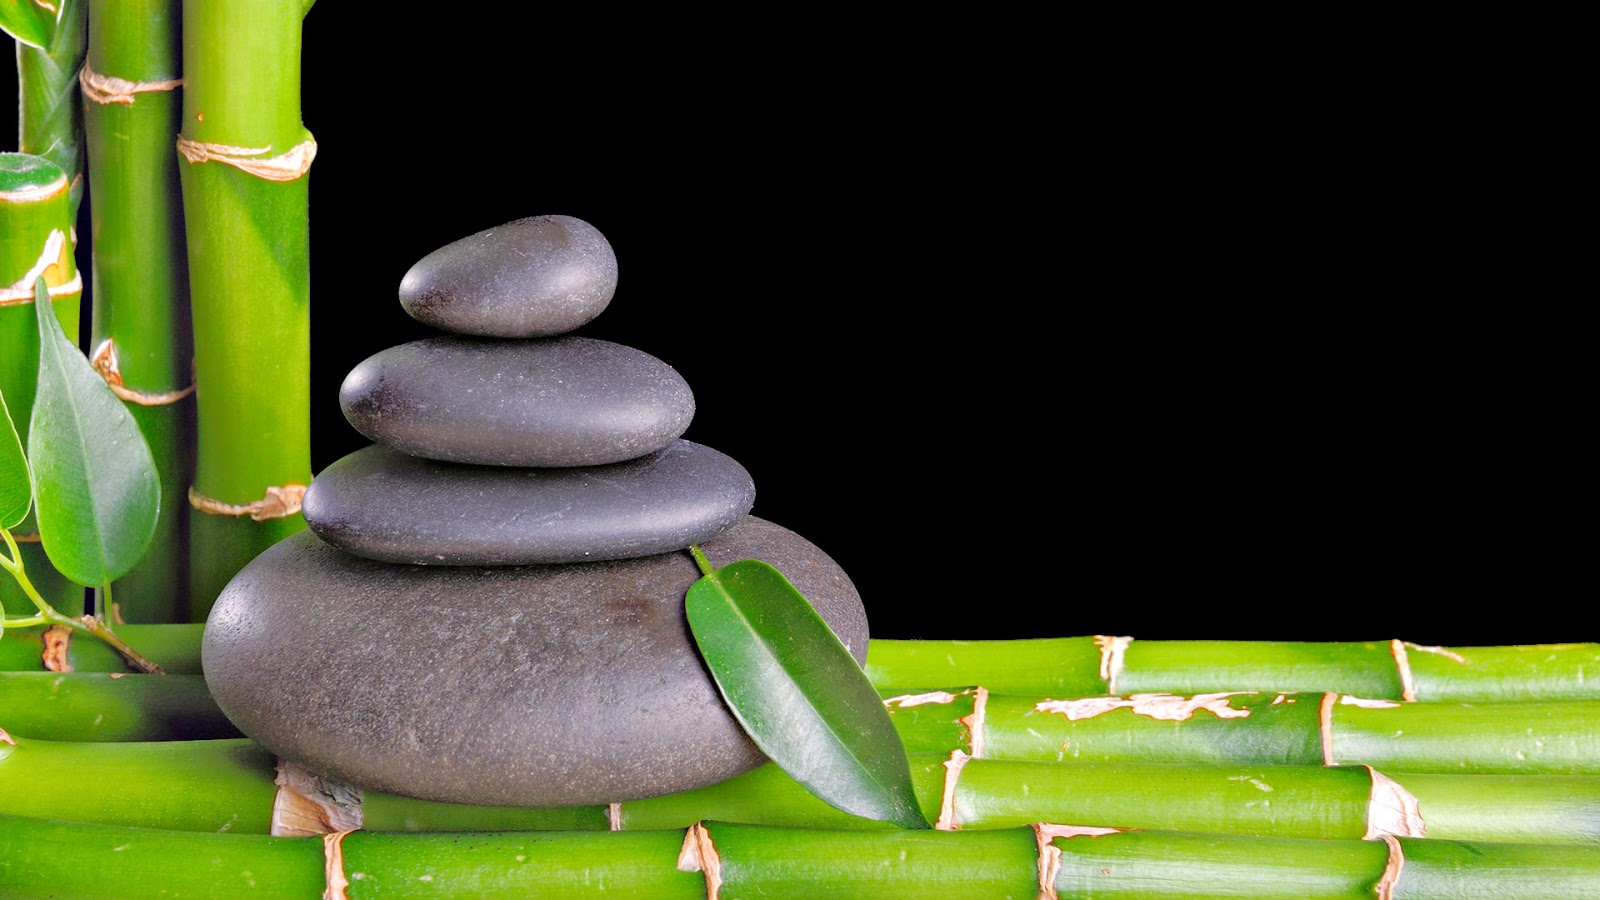 Bamboo and zen stones wallpaper wallpaper wide hd - Wallpaper volwassen kamer zen ...